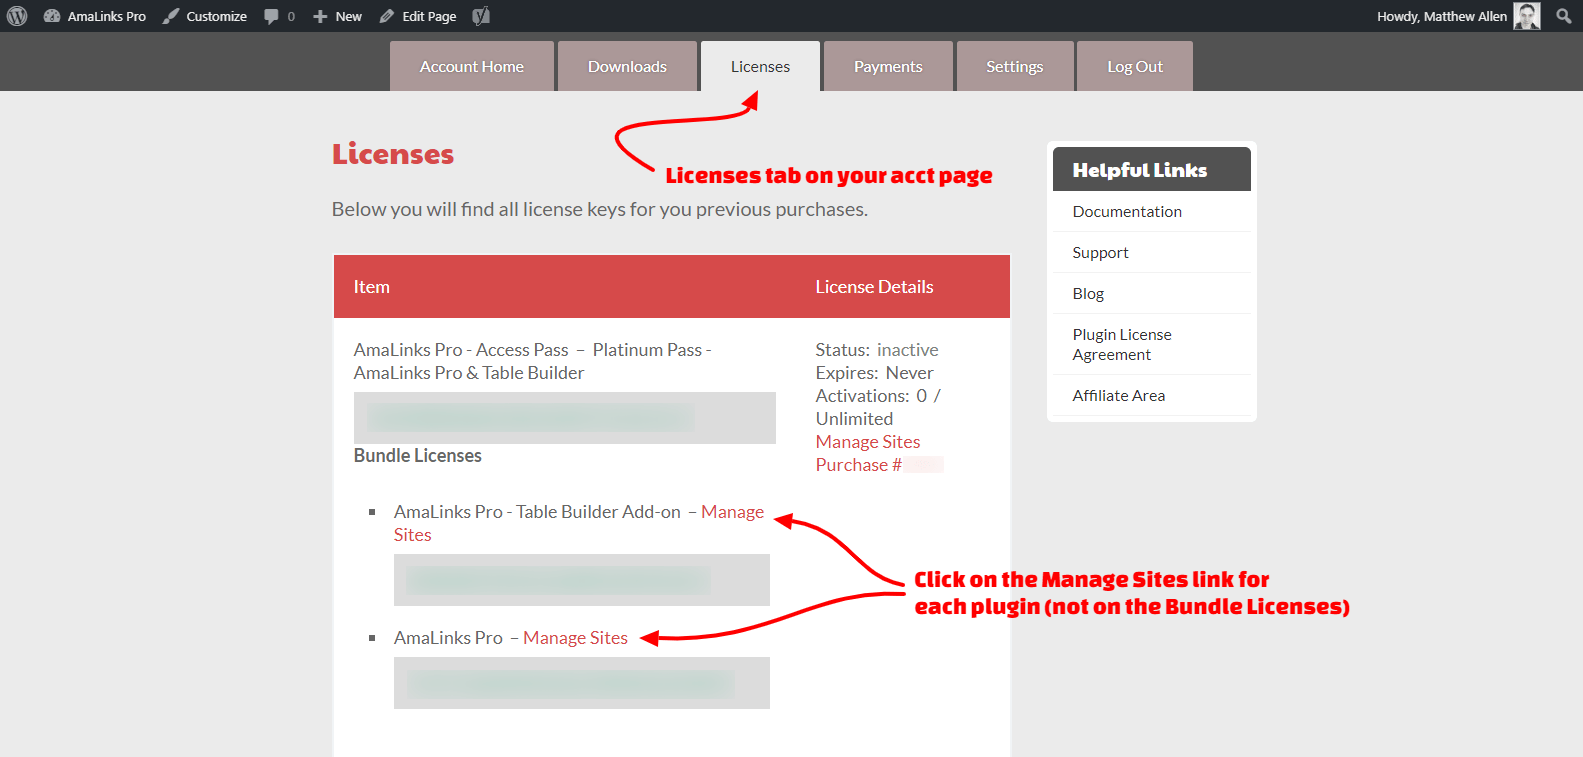 How to Update AmaLinks Pro - Licenses Tab